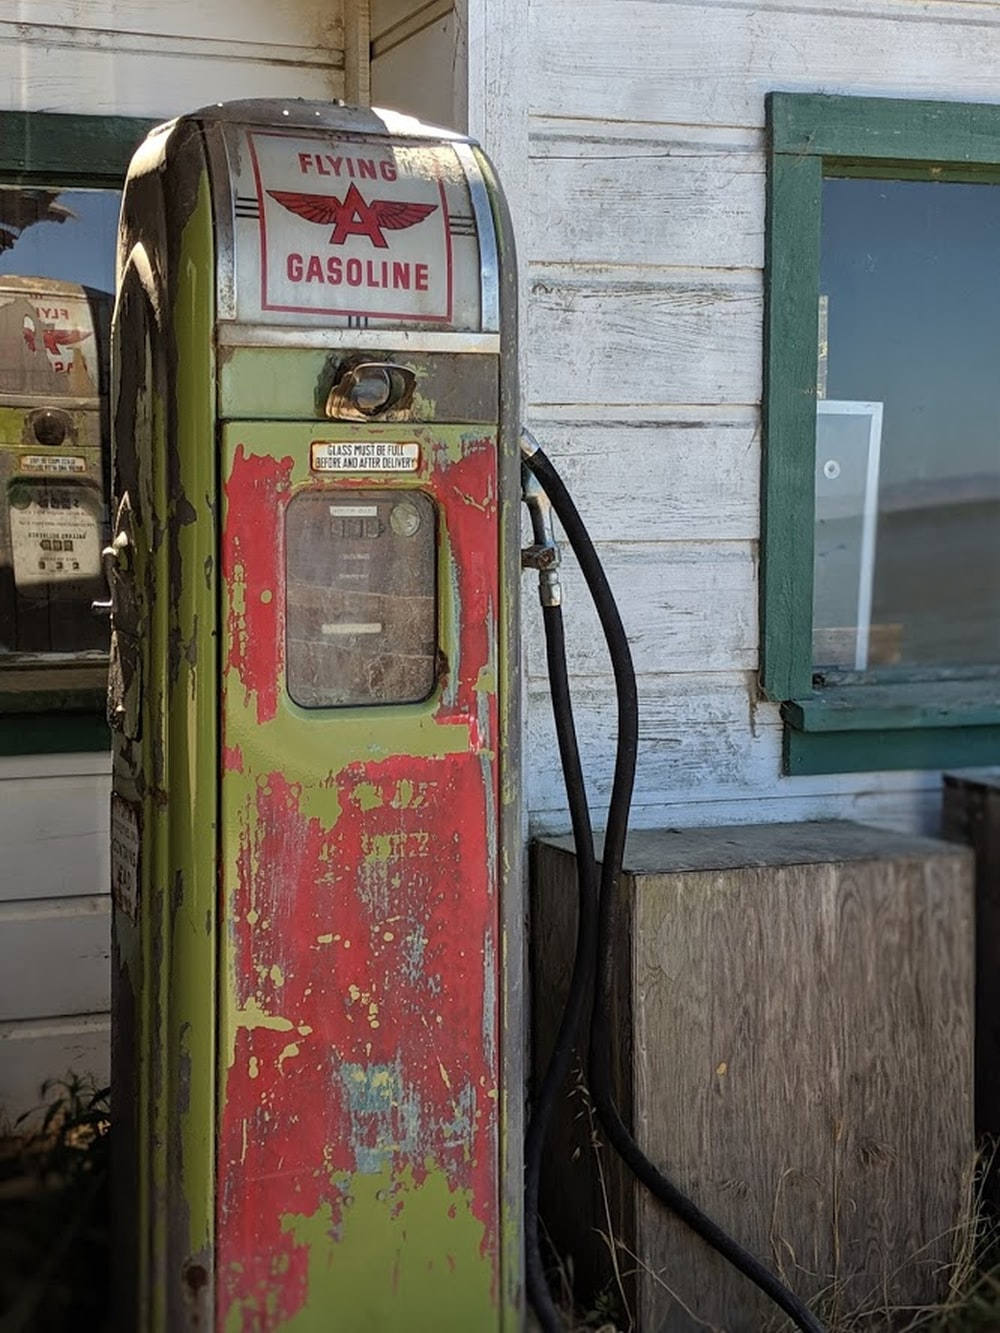 Flying Gasoline has pump by wooden housde